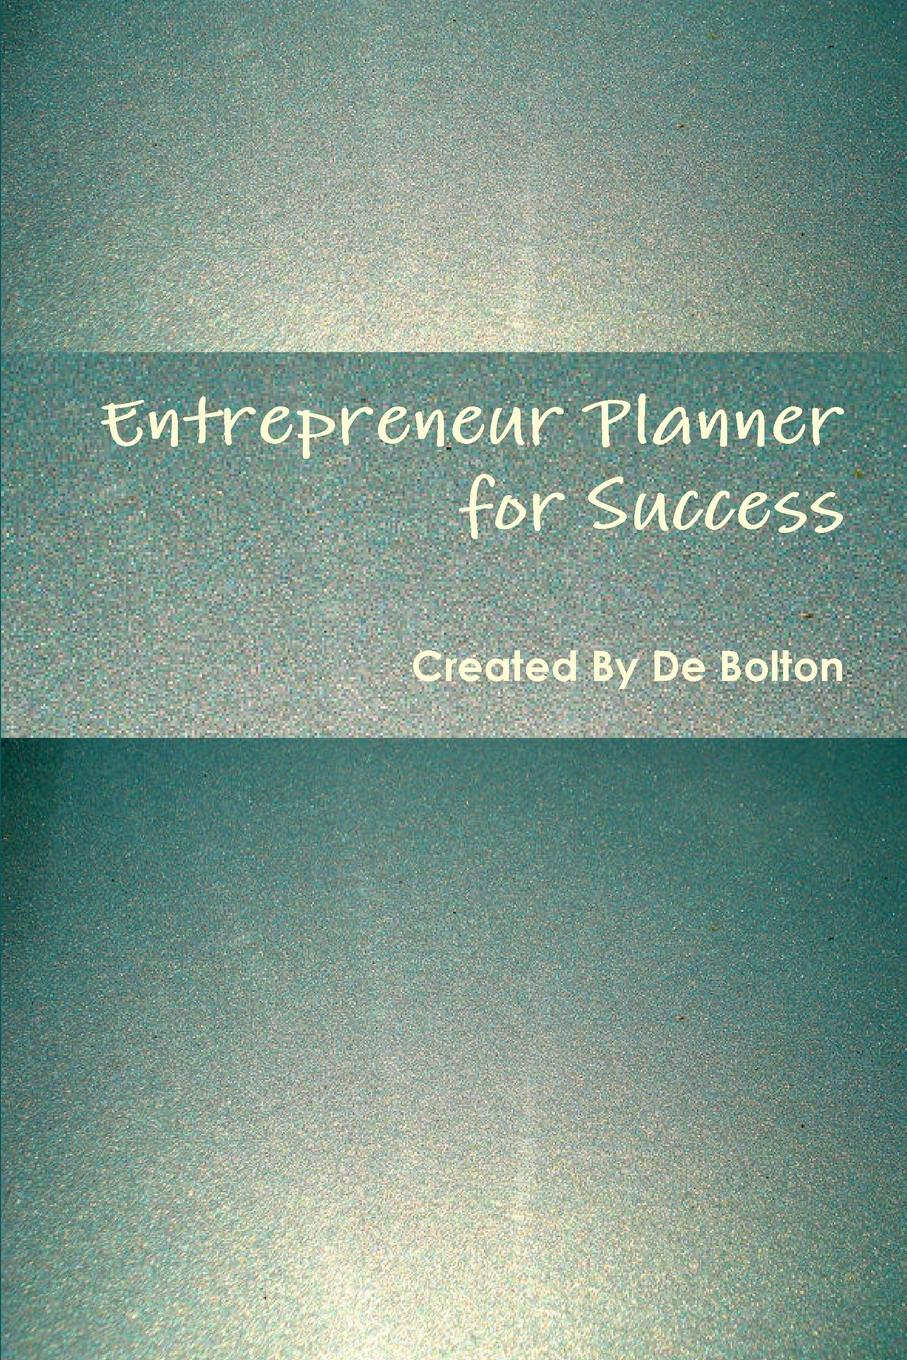 Entrepreneur Planner for Success •	Execute Your Business Goals with Energy•	Daily Marketing...